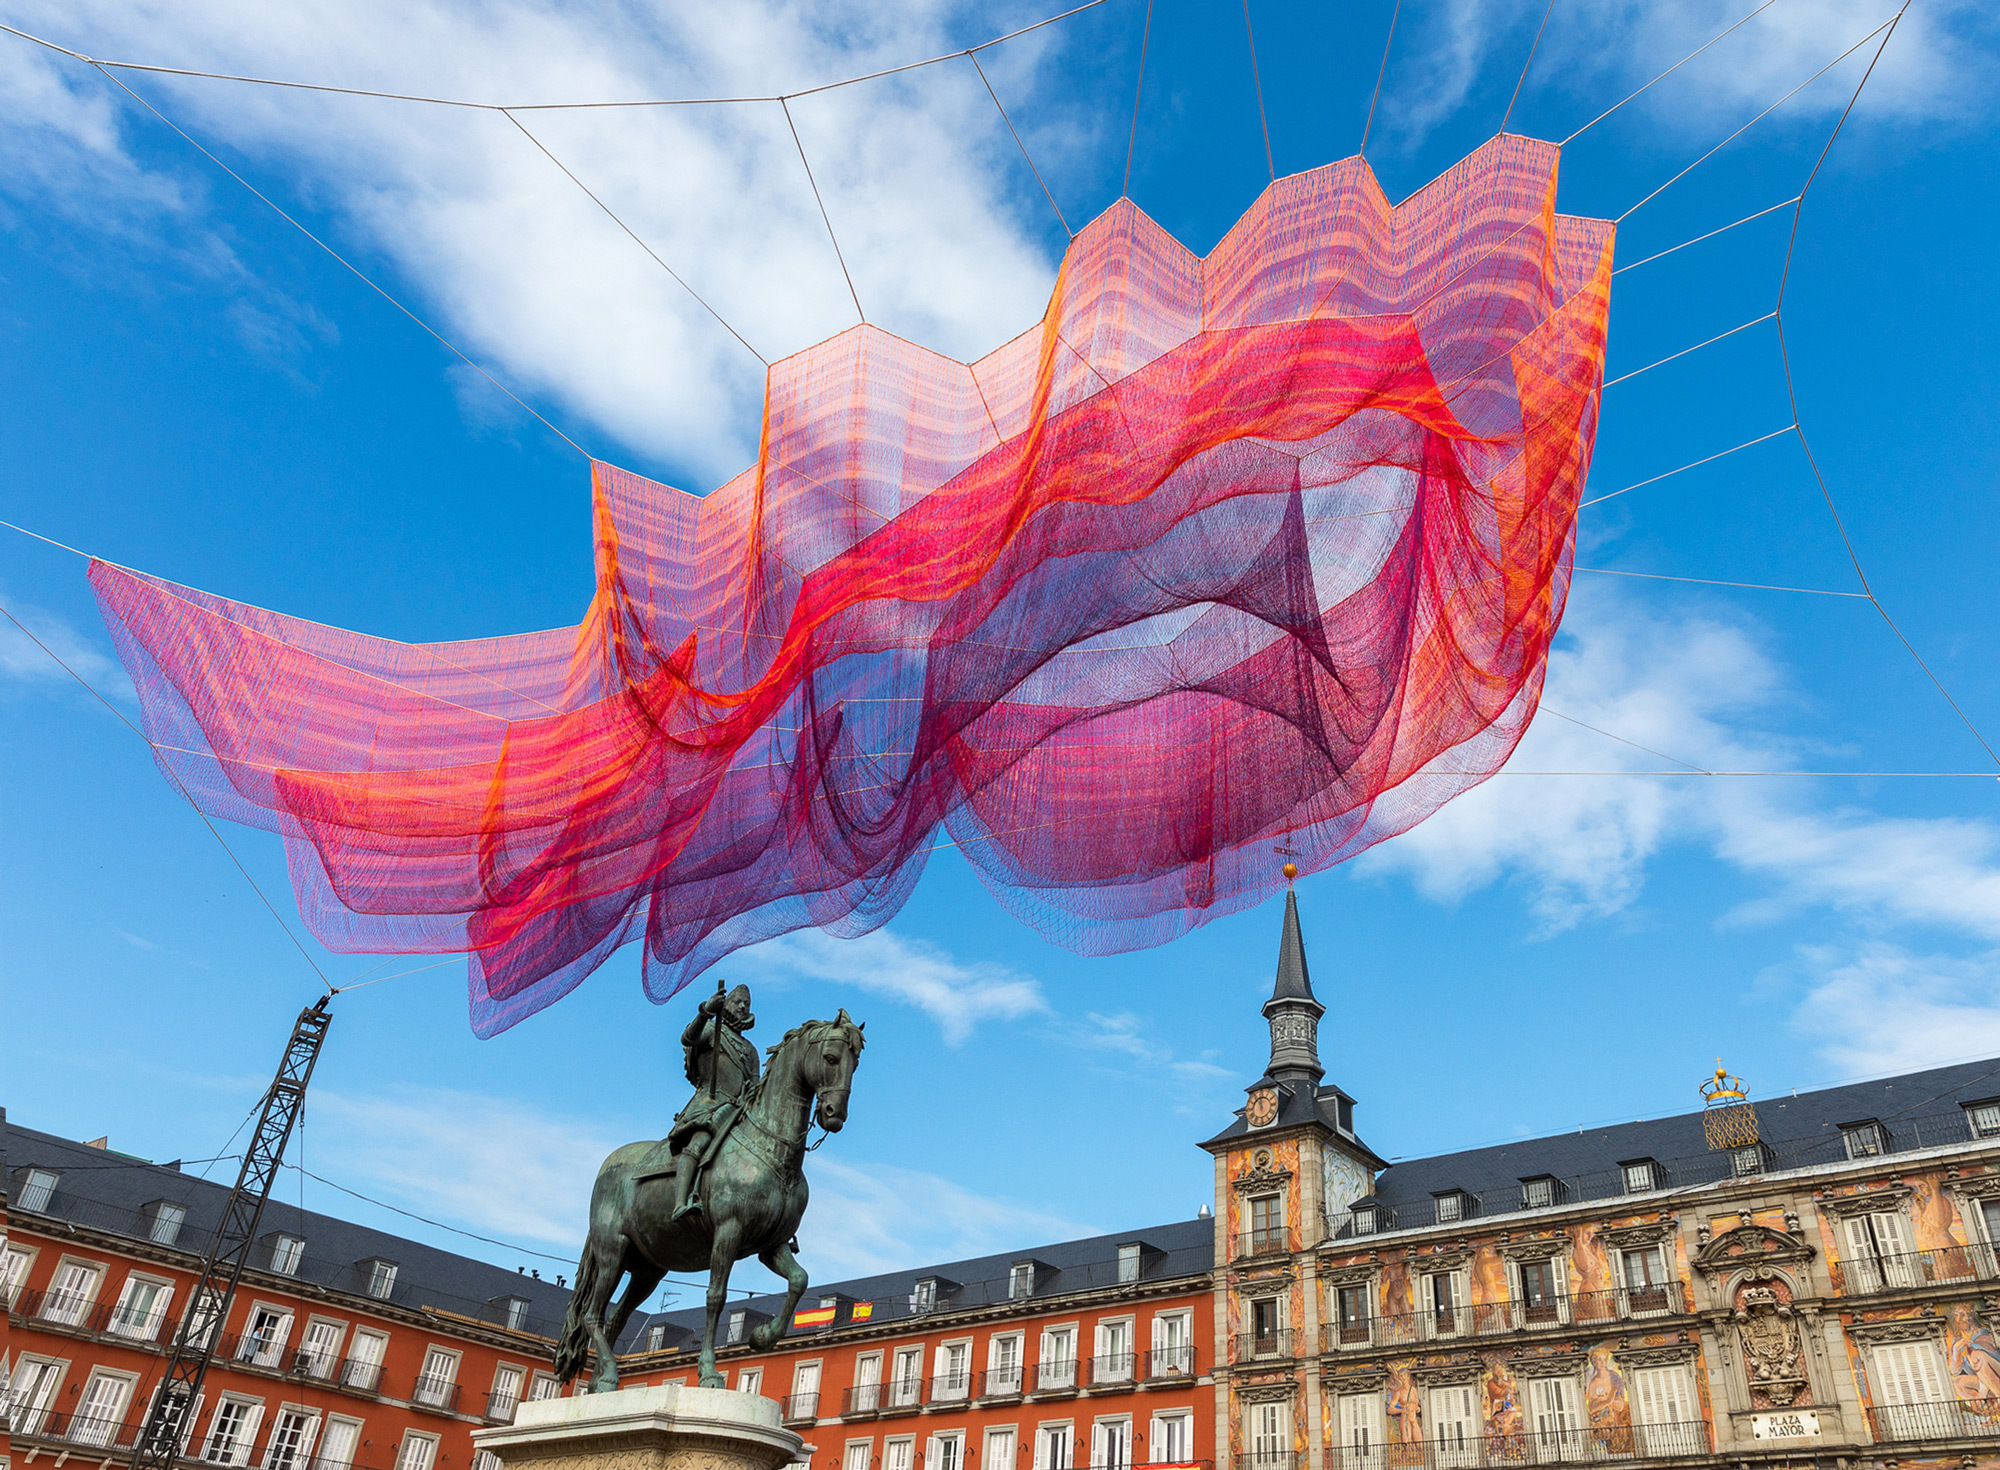 Fantastical Floating Sculptures That Will Send Your Mind Soaring | Geek Universe